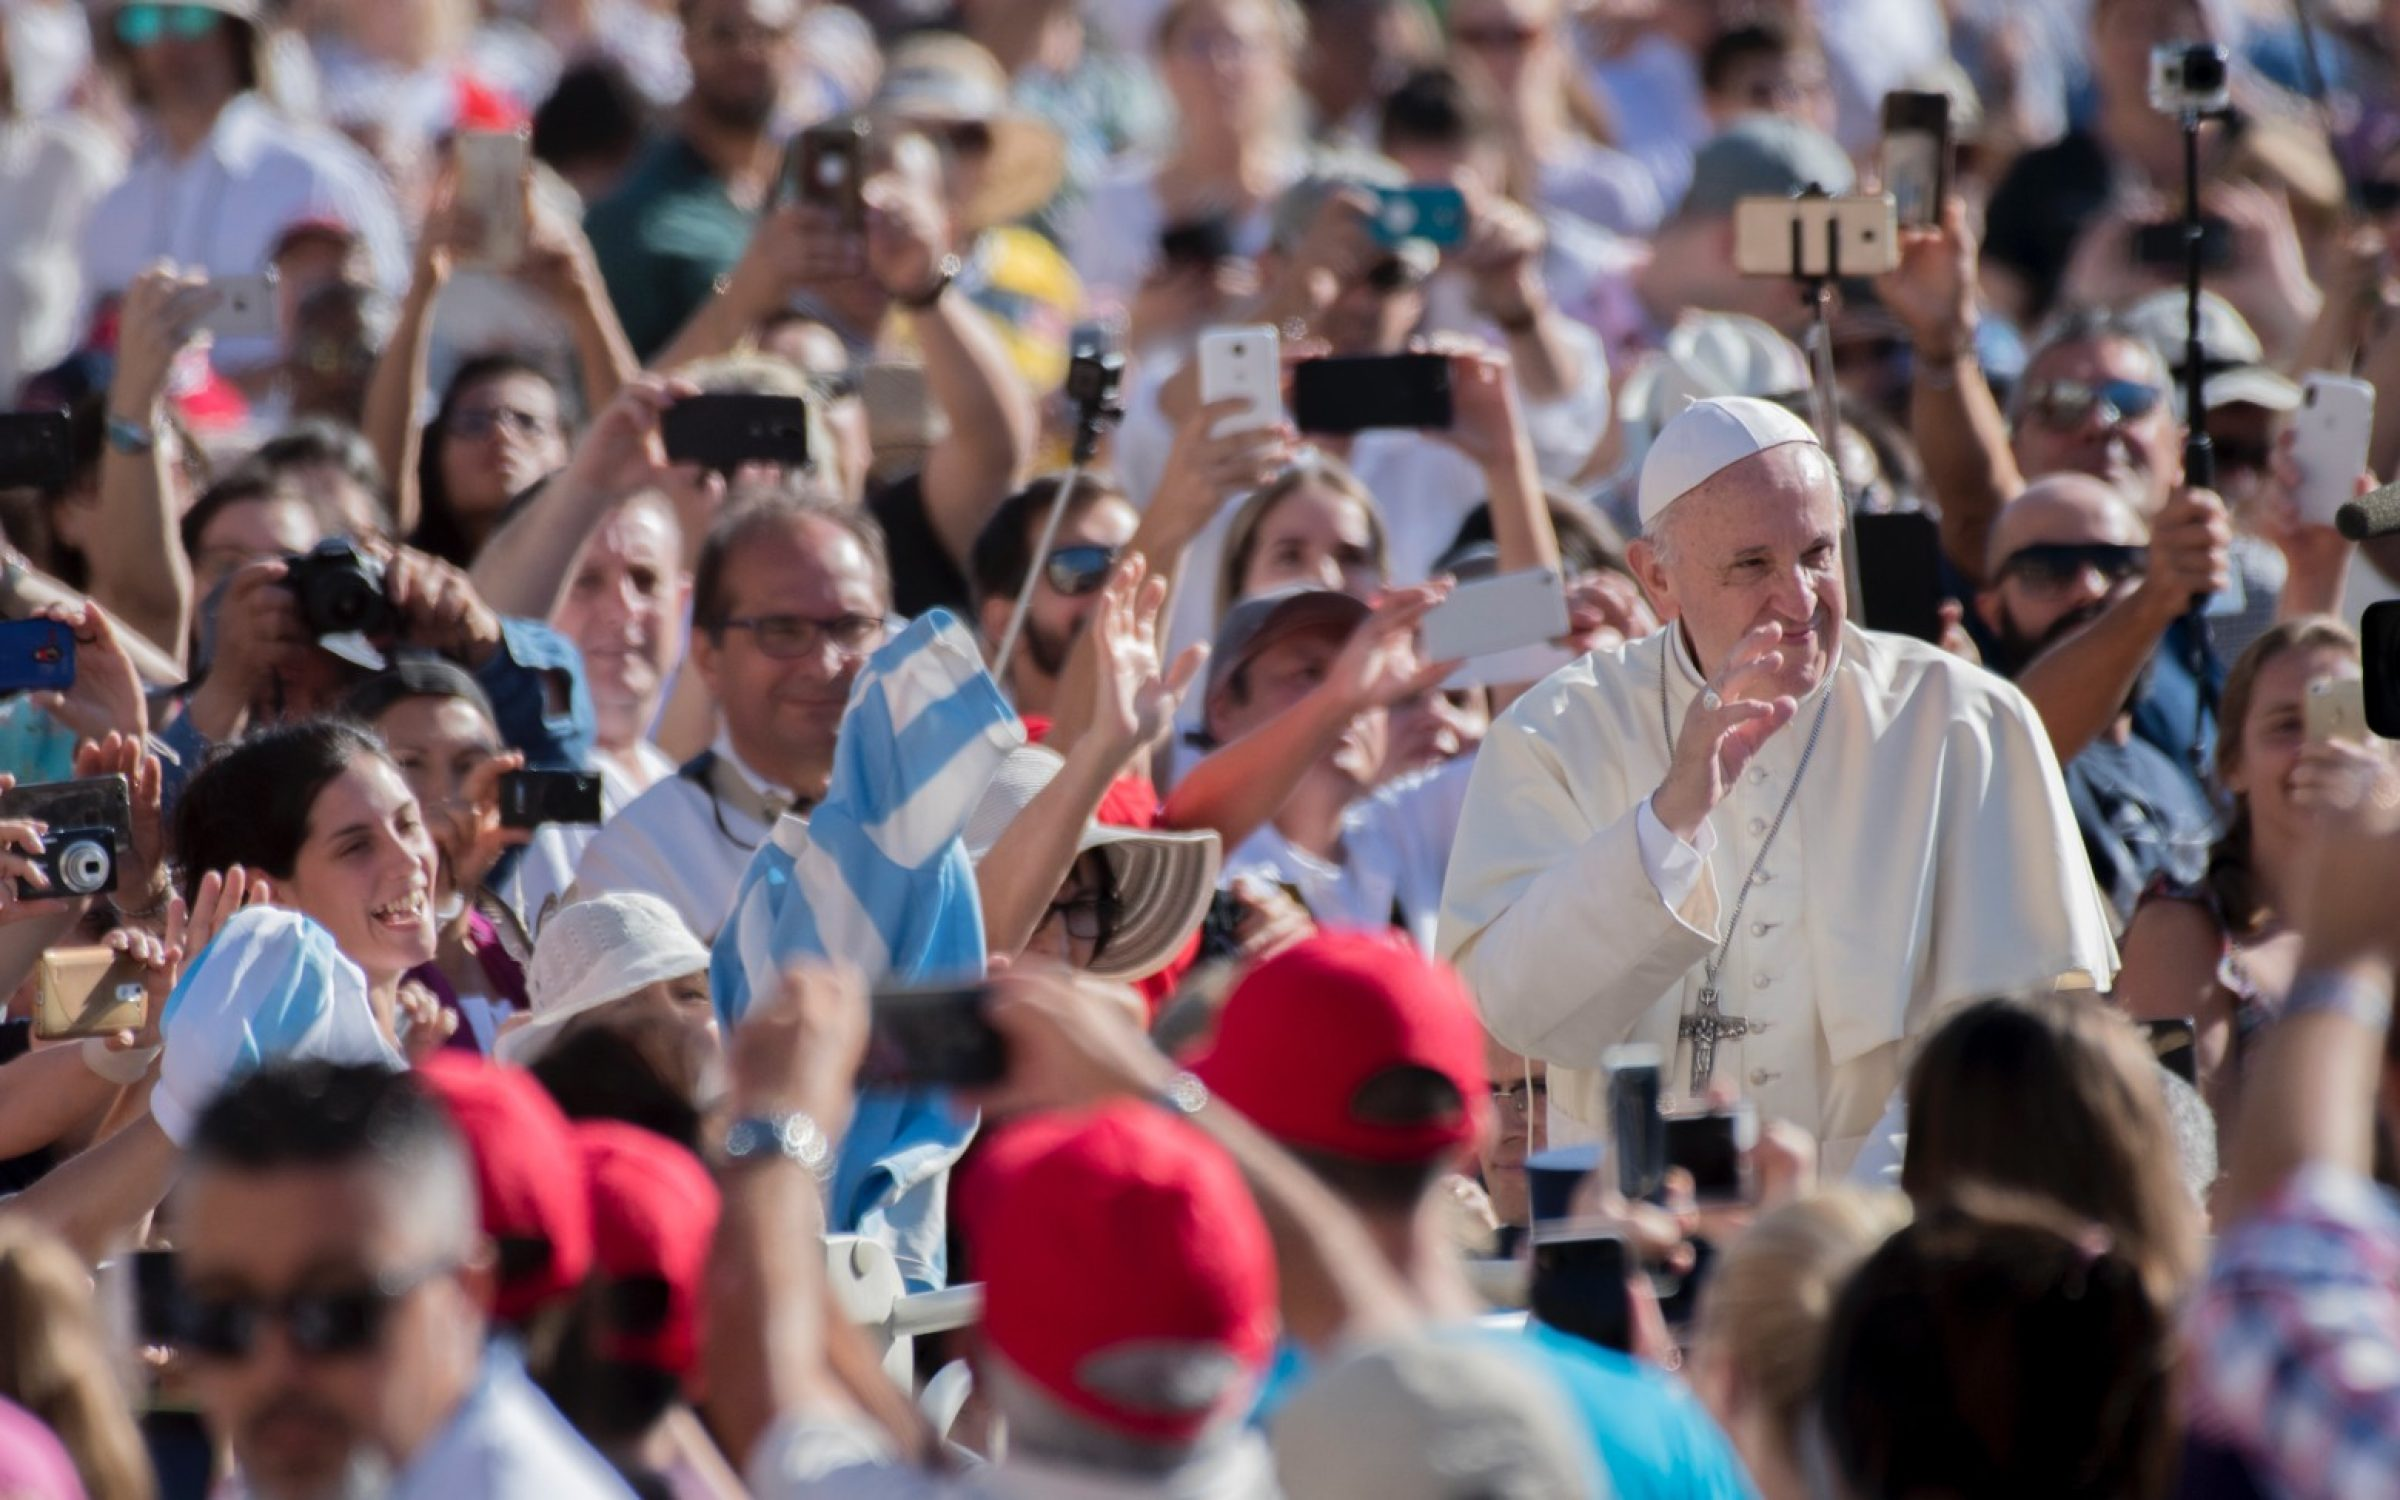 Pope Francis with his weekly audience in St. Peter's Square, Vatican City, in 2018. Credit: Massimo Wallichia / Getty Images.